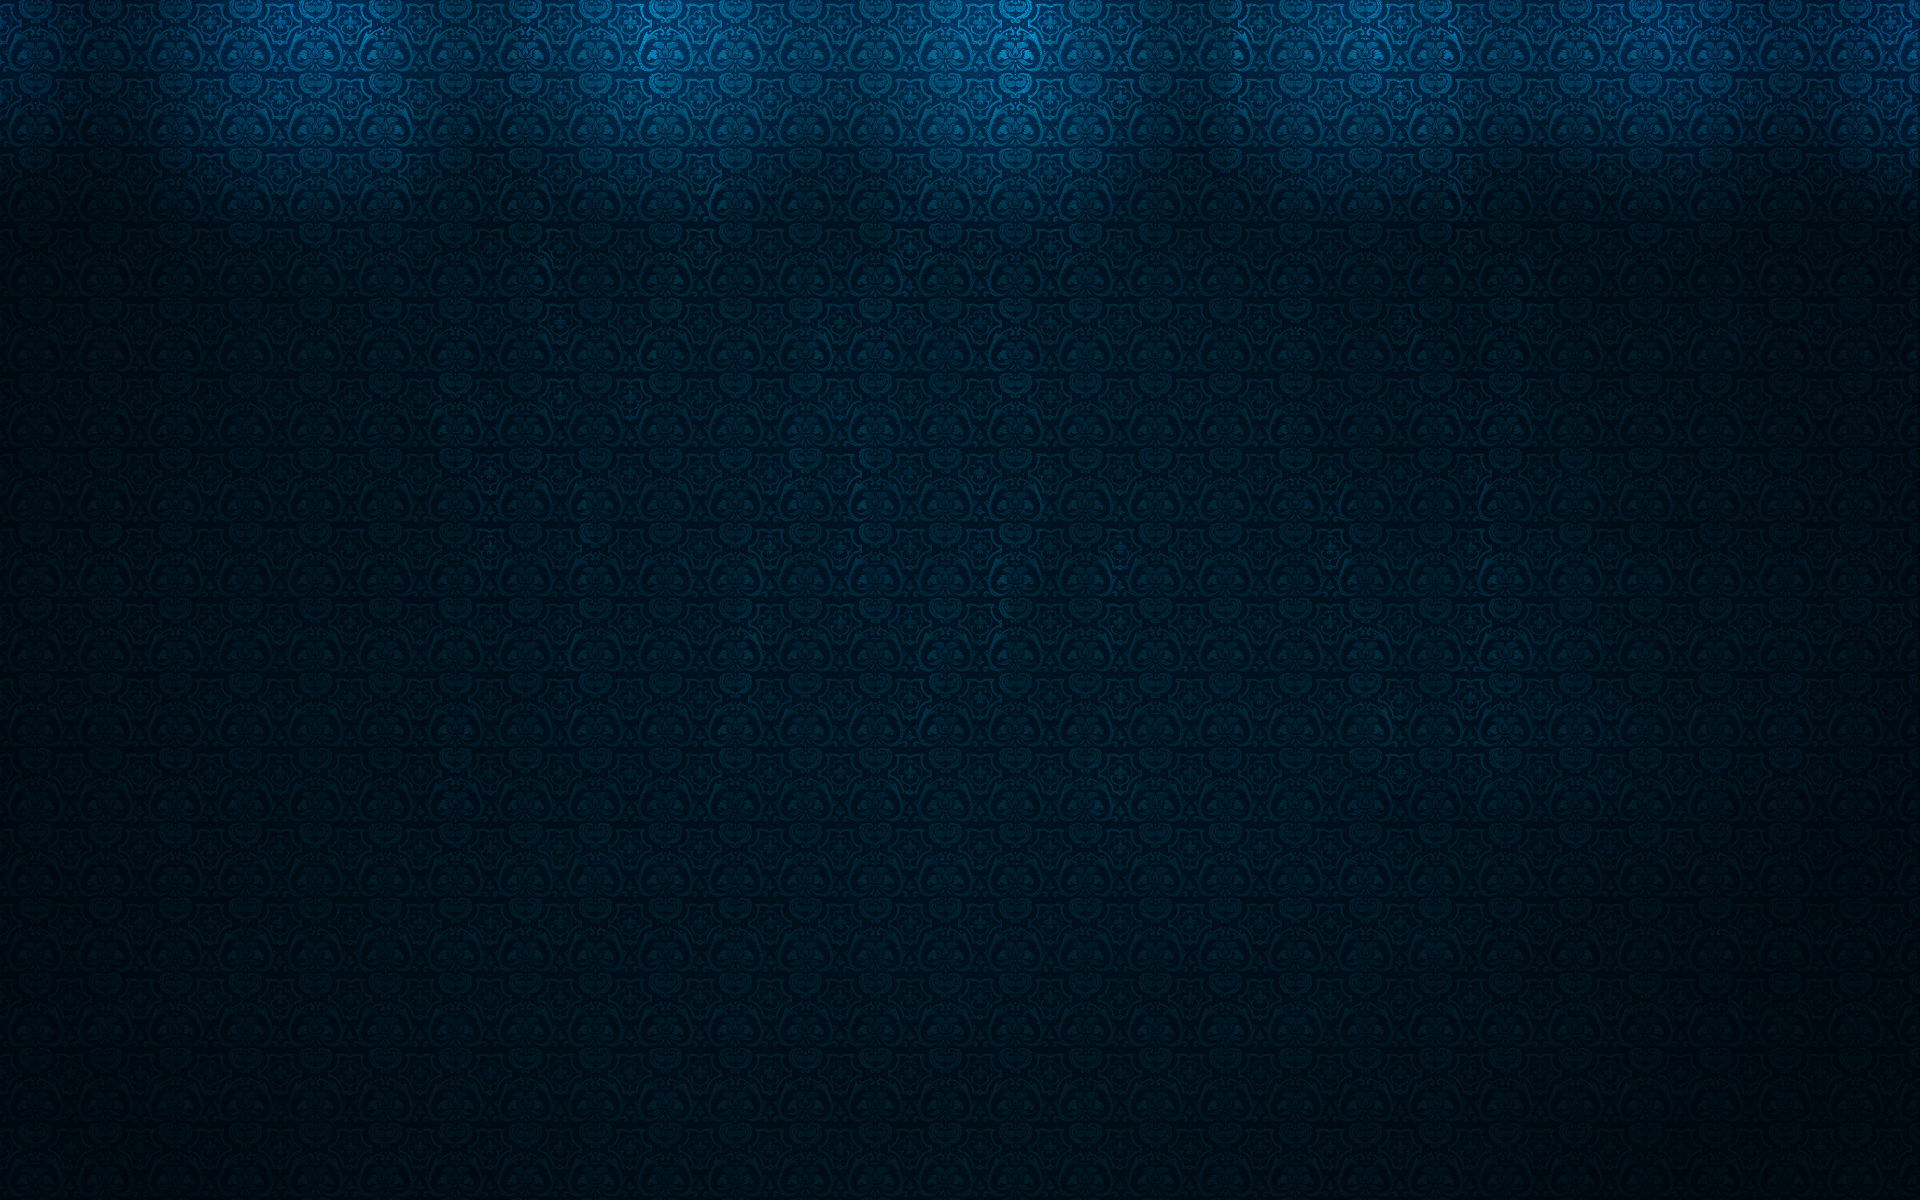 Dark Blue Wallpaper High Quality 1920x1200